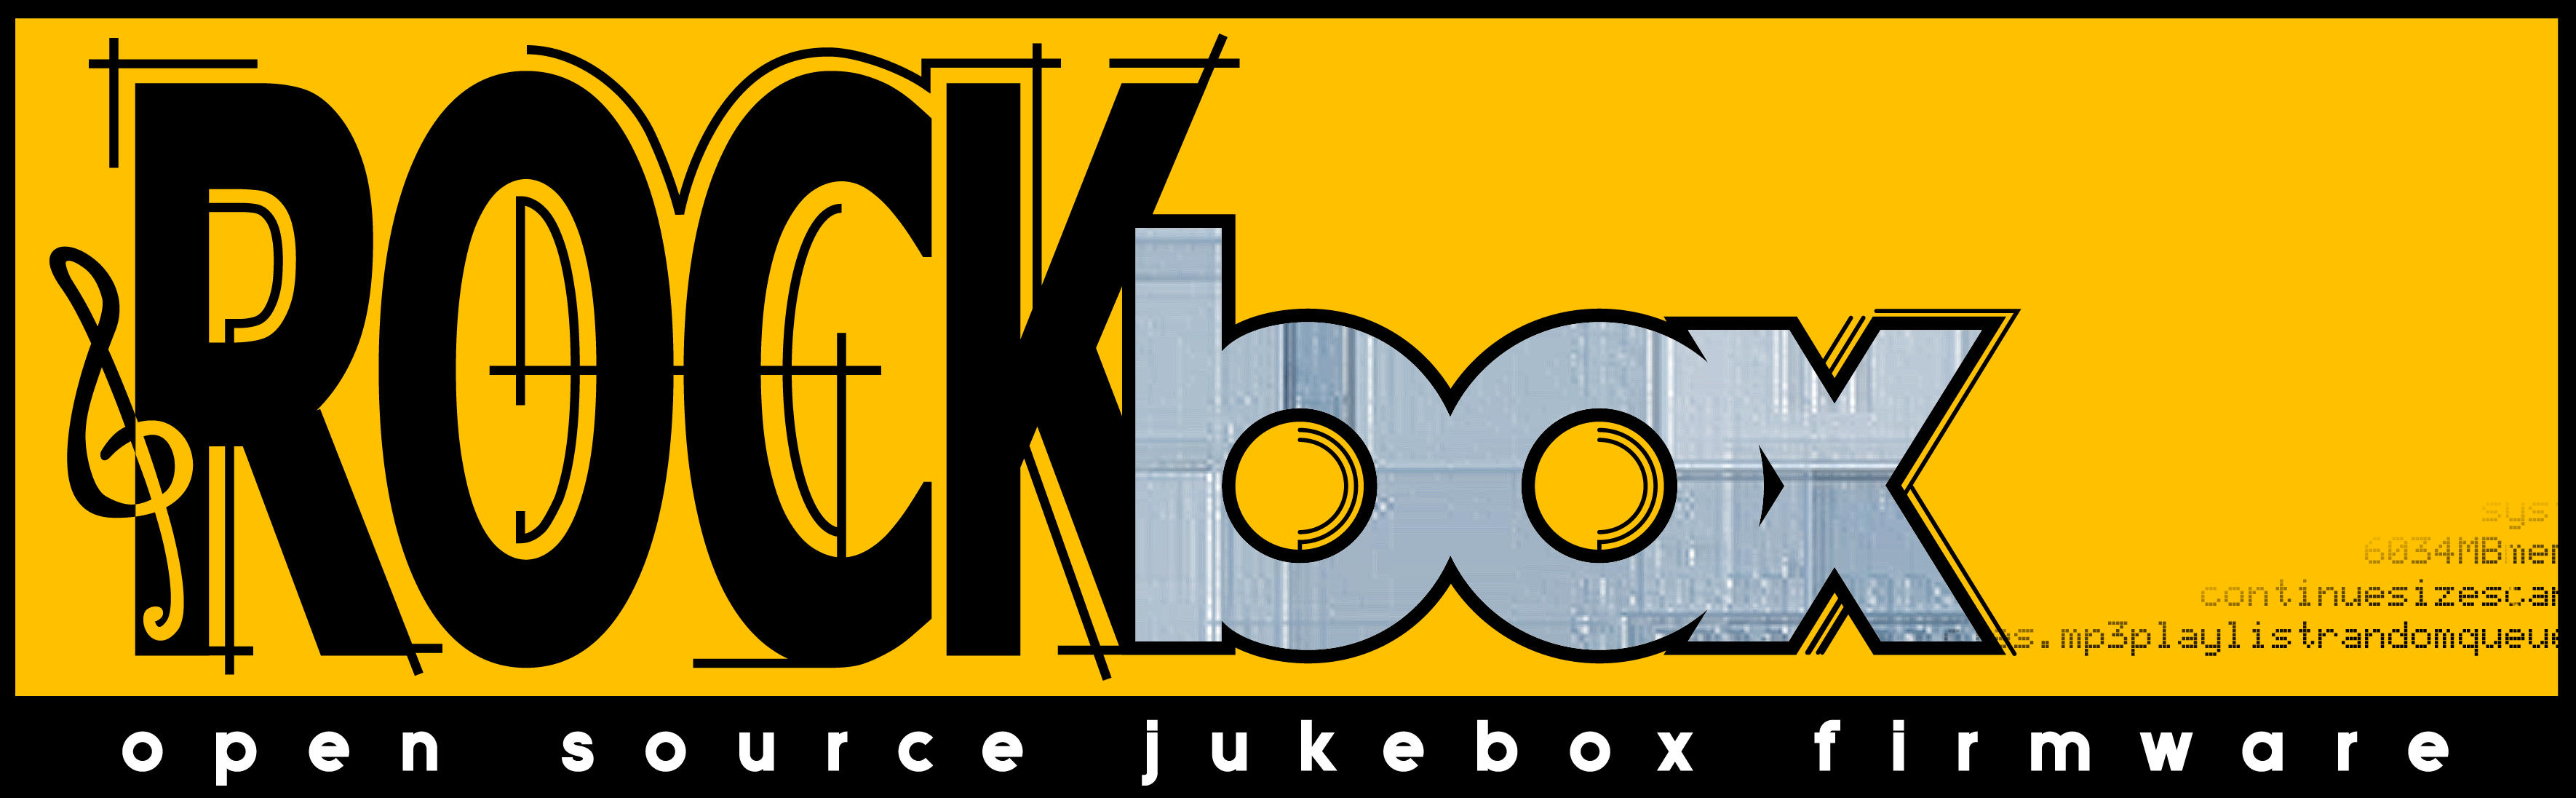 Rockbox services transition